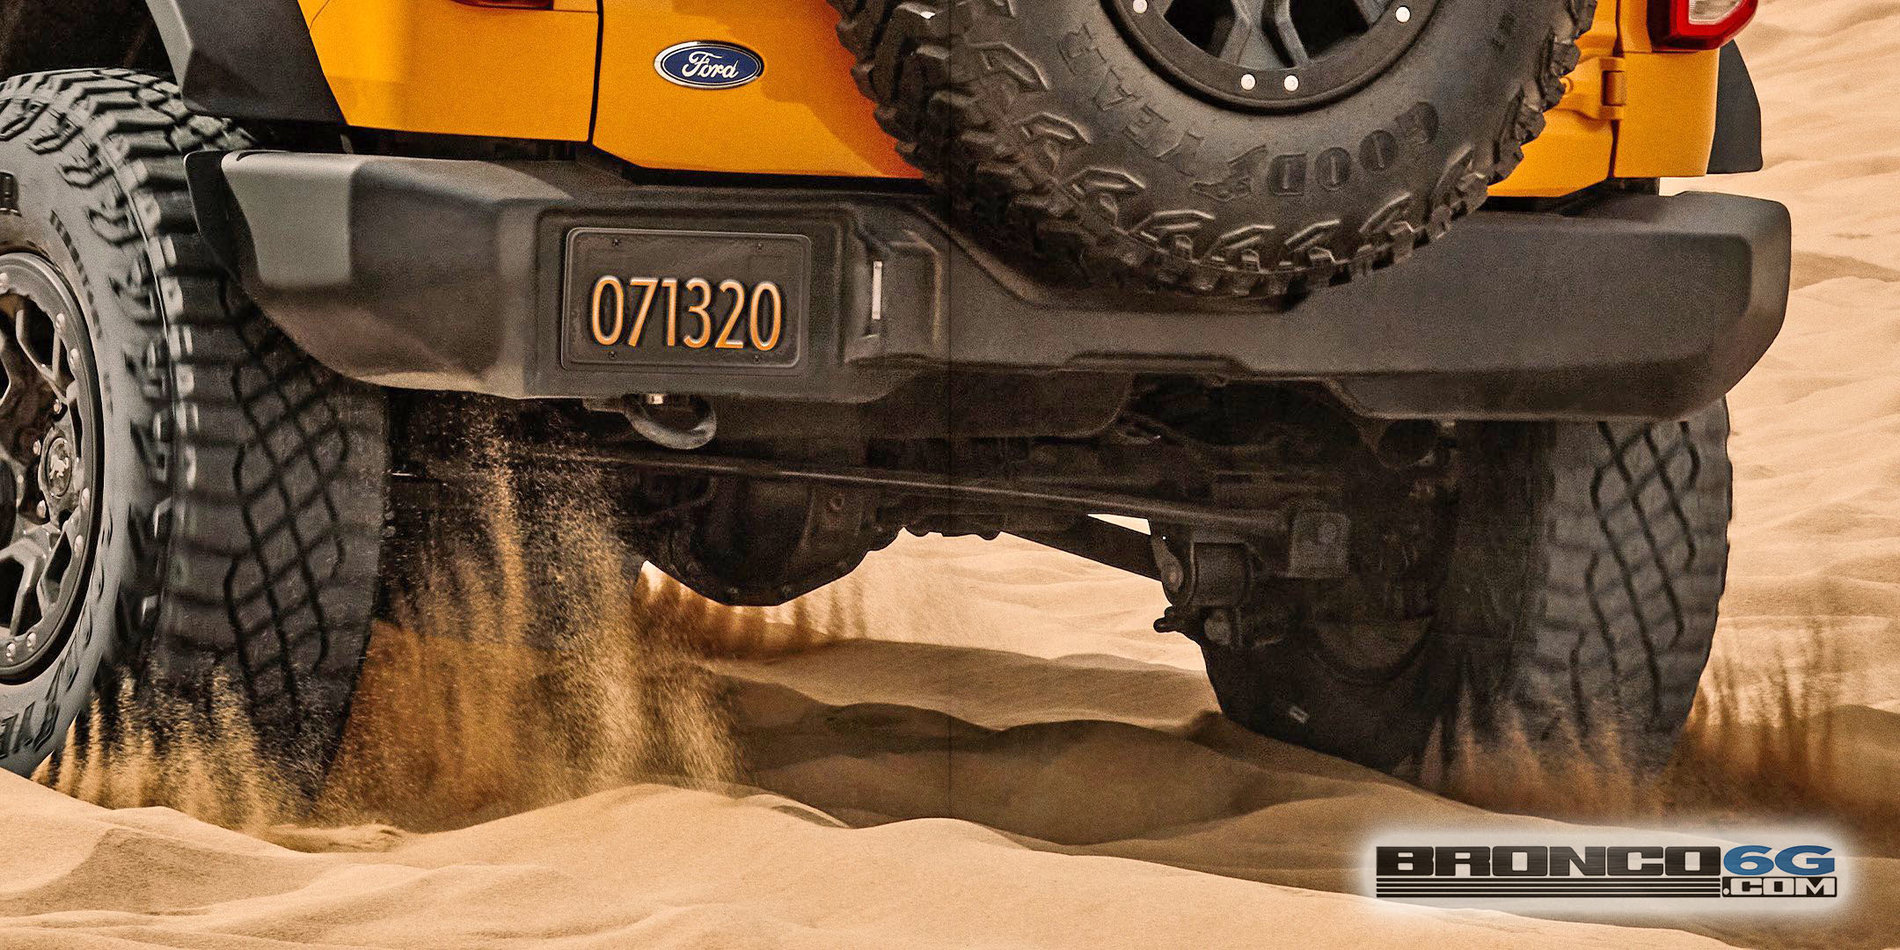 2021 Ford Bronco Rear Bumper and Tires Teaser.jpg